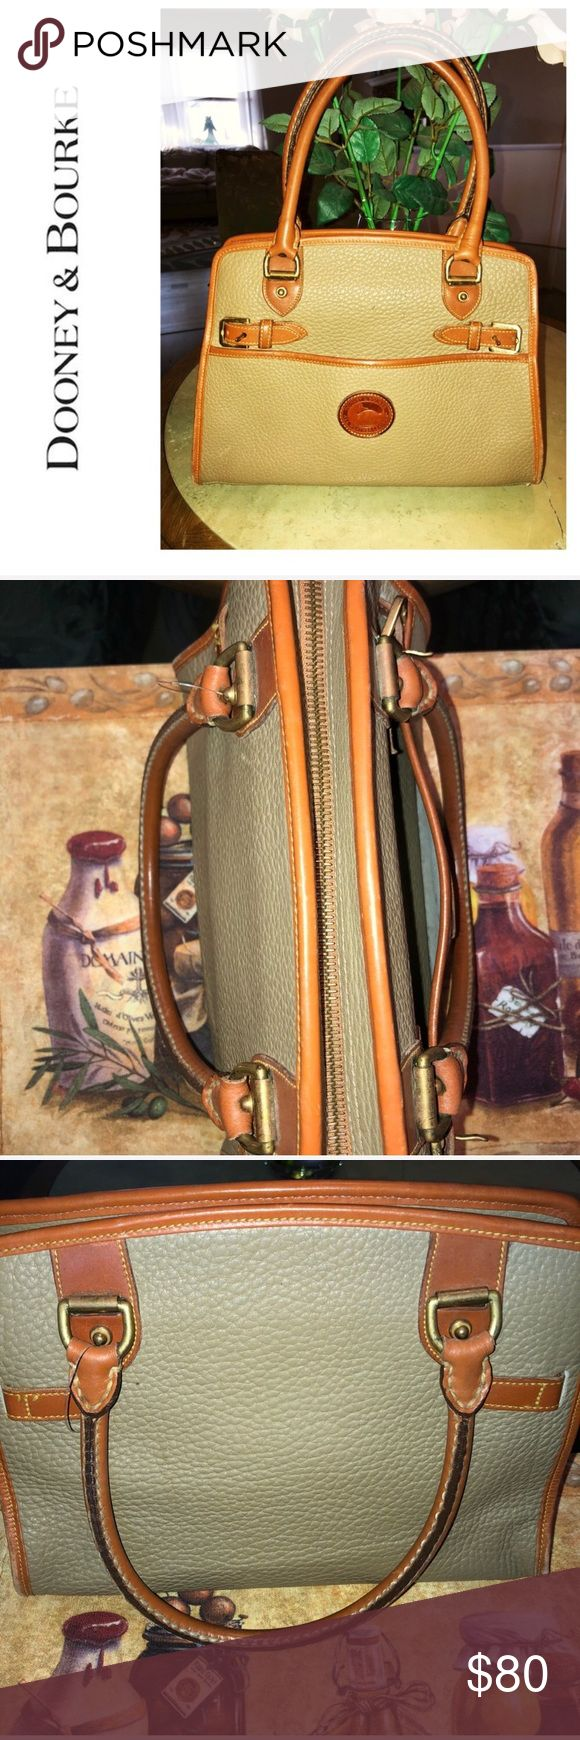 Vintage Rare Dooney & Bourke Bag 🌺 🌻Army Green and Patina Leather  🌻100% Authentic  🌻Clean interior and exterior !  🌻Smoke free home no heavy perfume odors! 🌻Same day or next day shipping  🌻HAPPY POSHING 🌻 Dooney & Bourke Bags Shoulder Bags